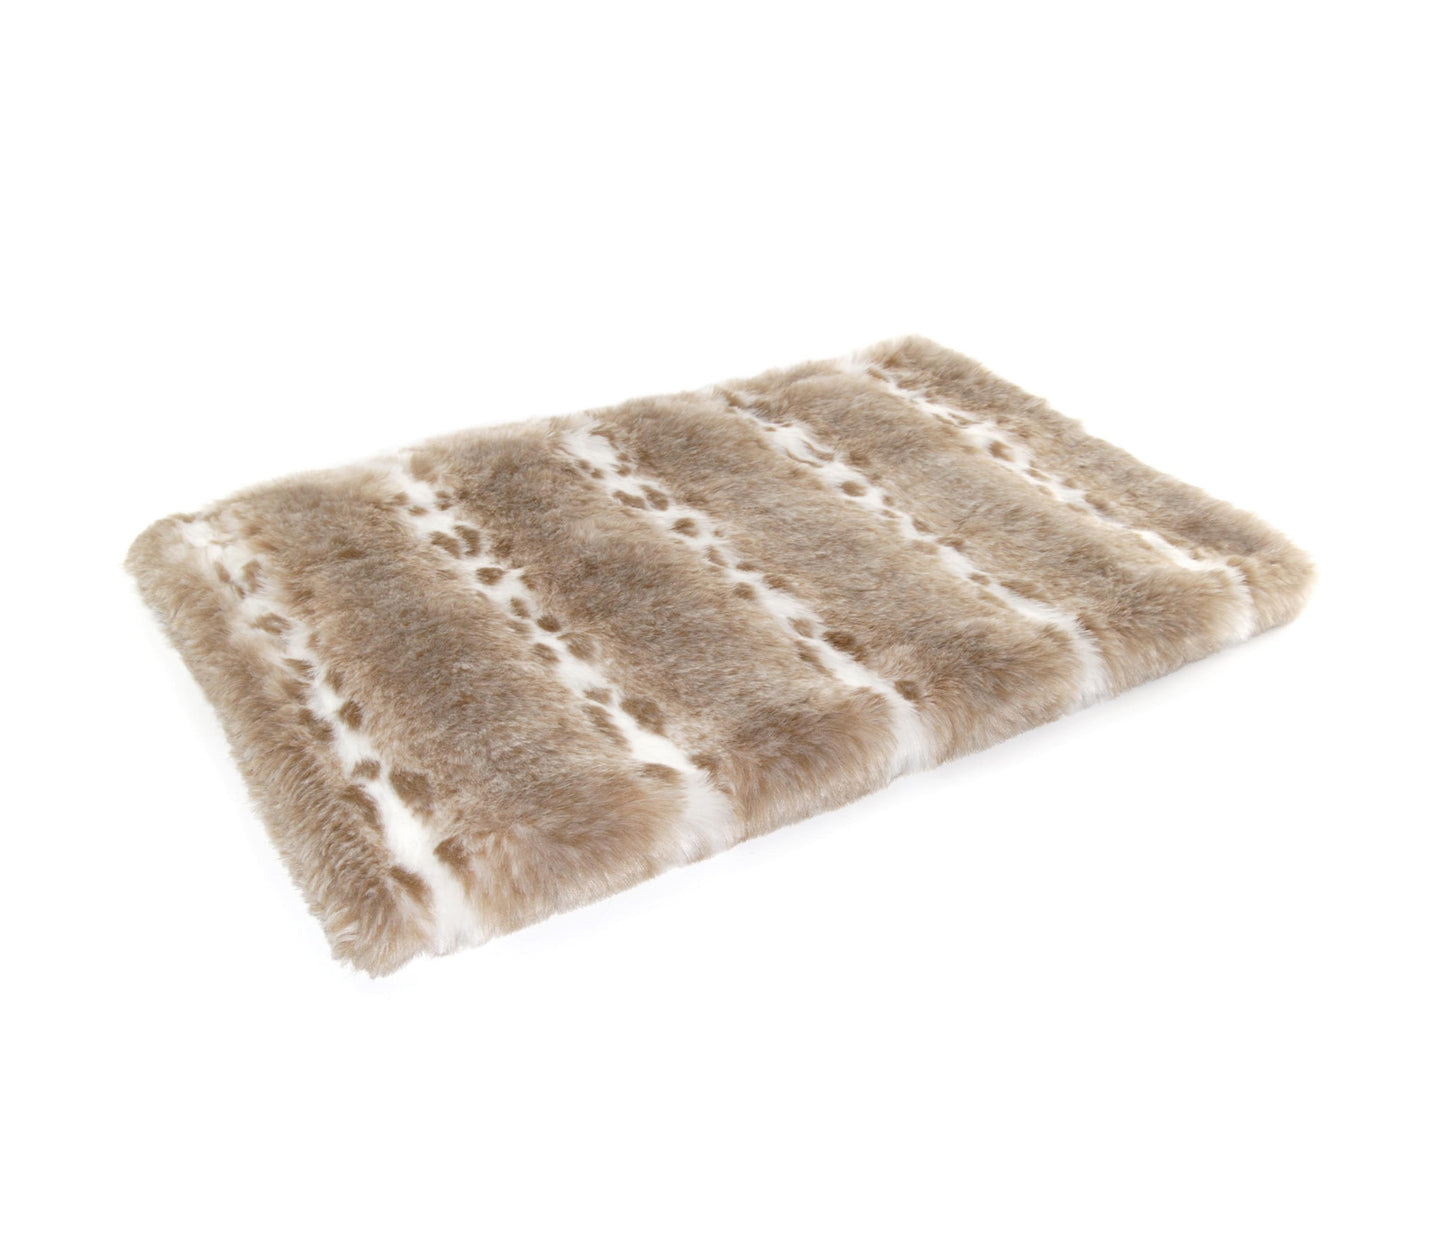 Park Avenue Cushion Italienisches Faux Fur